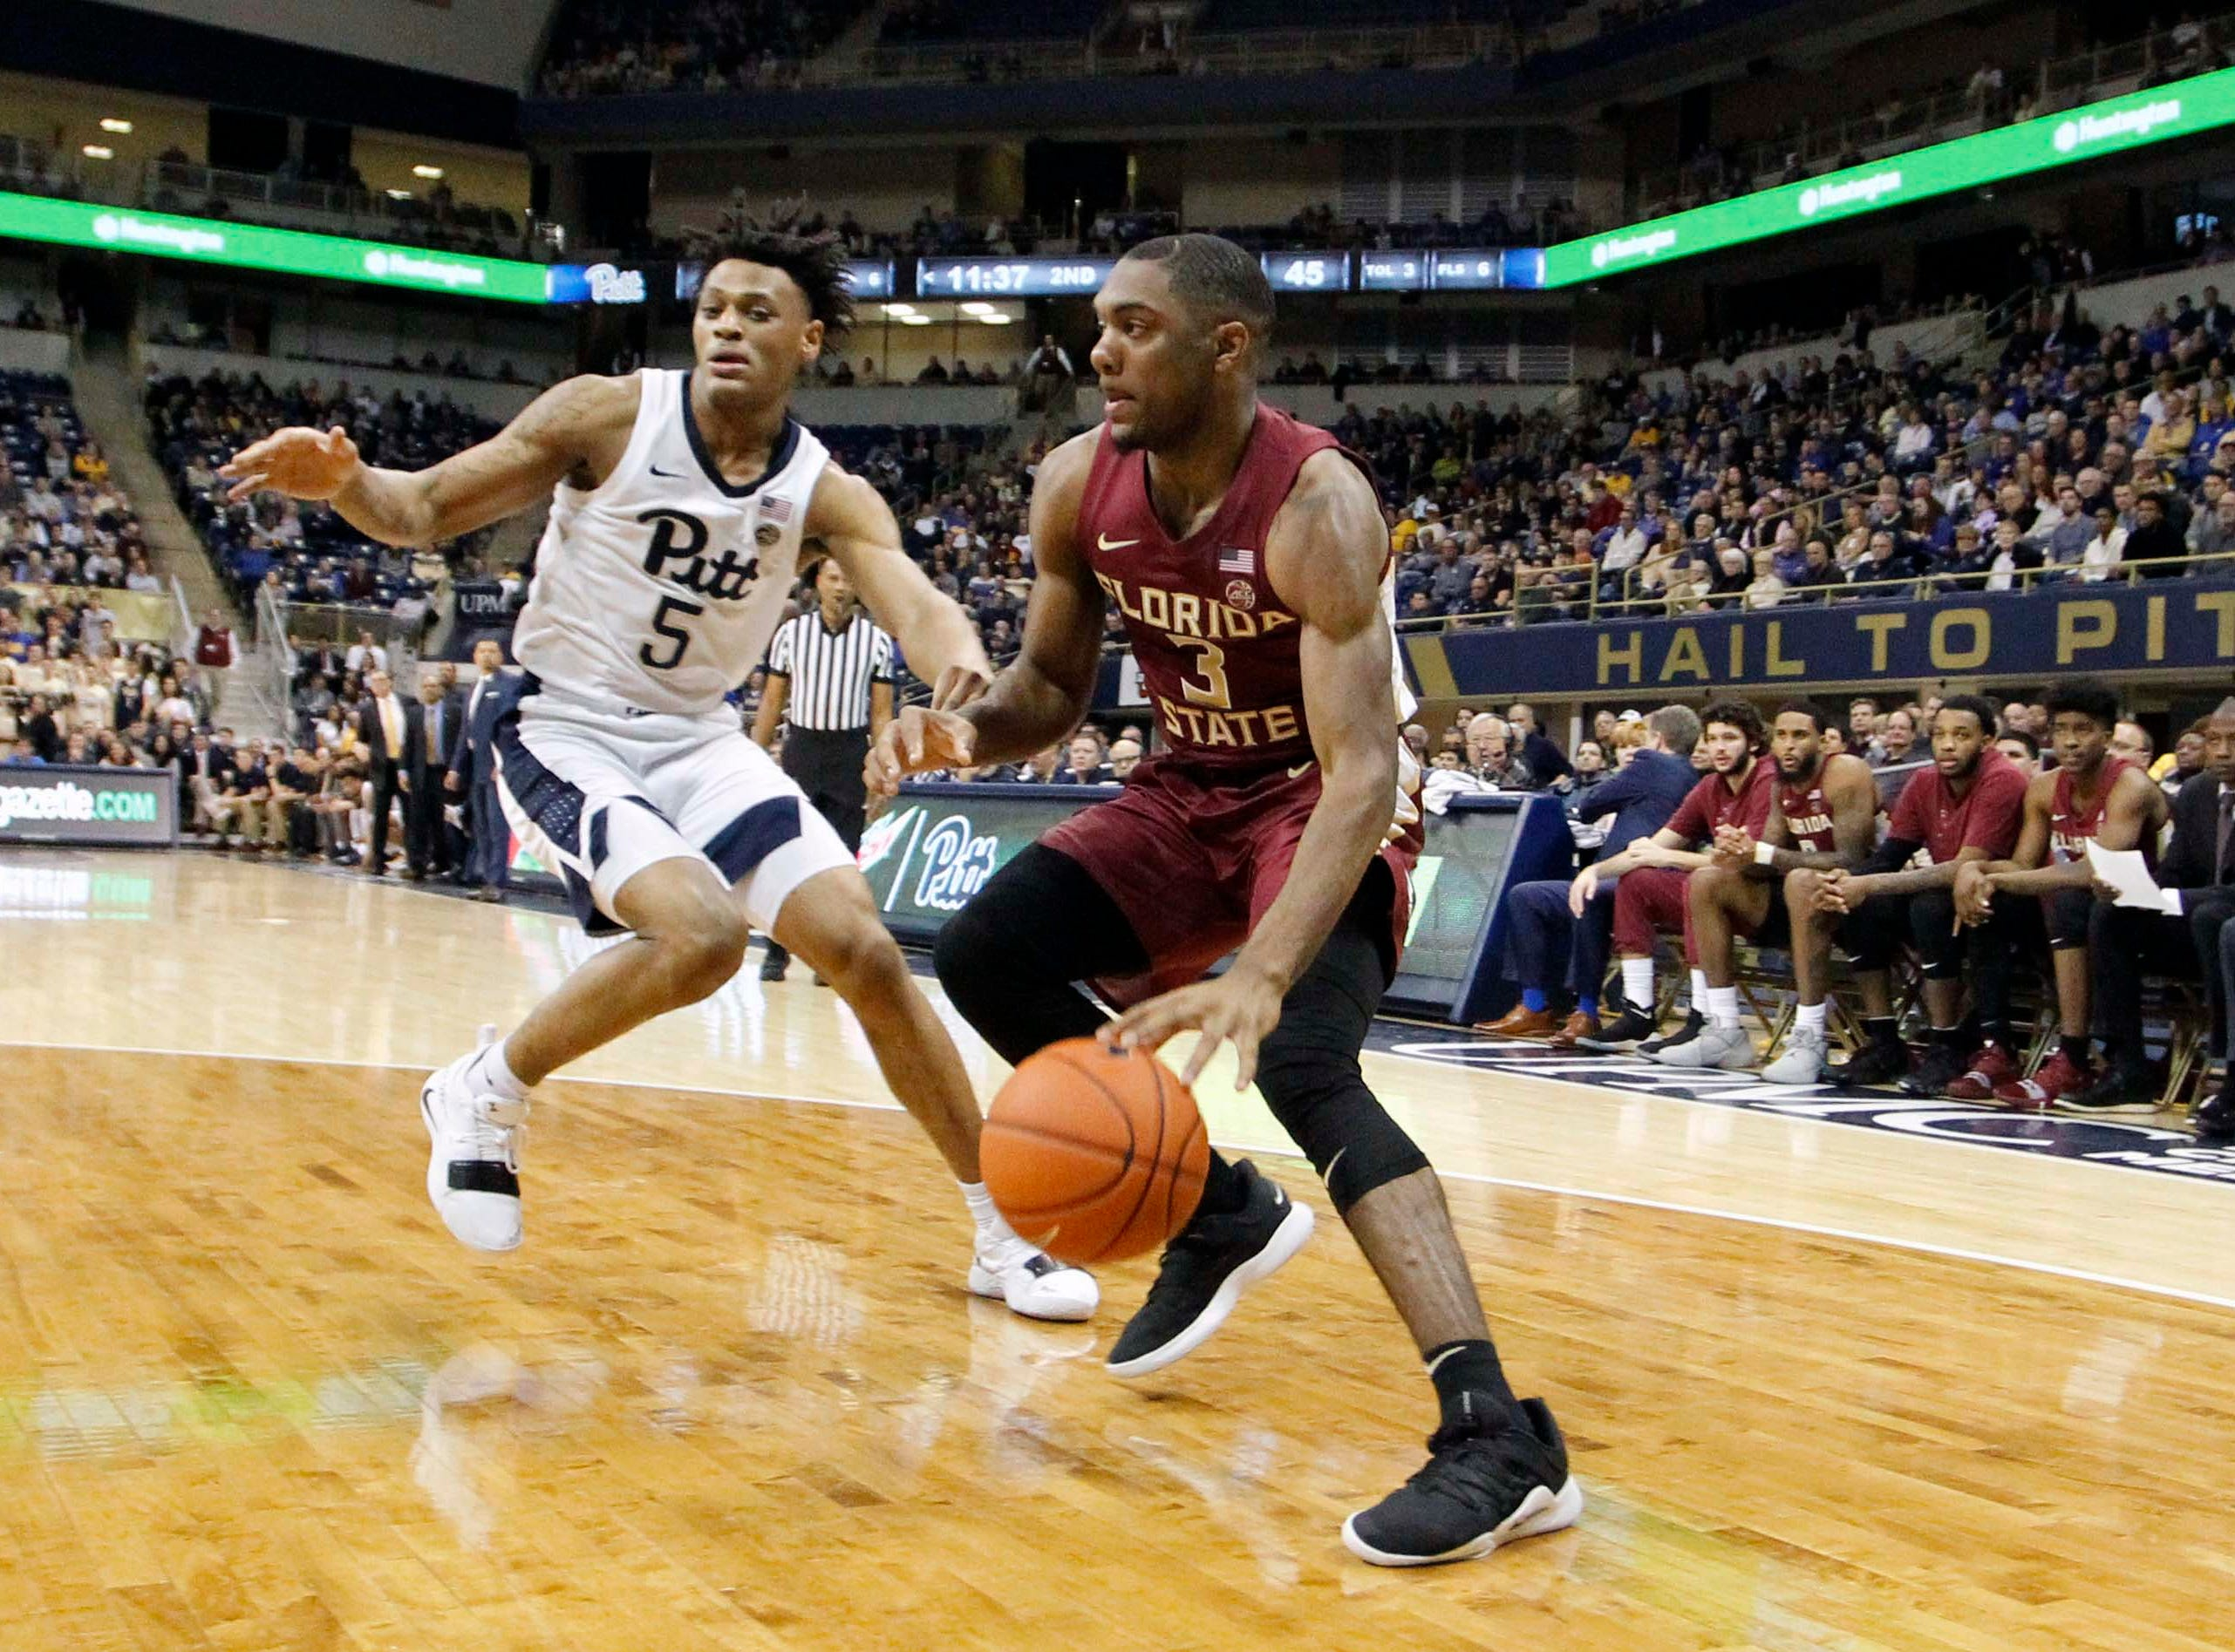 Jan 14, 2019; Pittsburgh, PA, USA; Florida State Seminoles guard Trent Forrest (3) dribbles the ball against Pittsburgh Panthers guard Au'Diese Toney (5) during the second half at the Petersen Events Center. Pittsburgh won 75-62. Mandatory Credit: Charles LeClaire-USA TODAY Sports